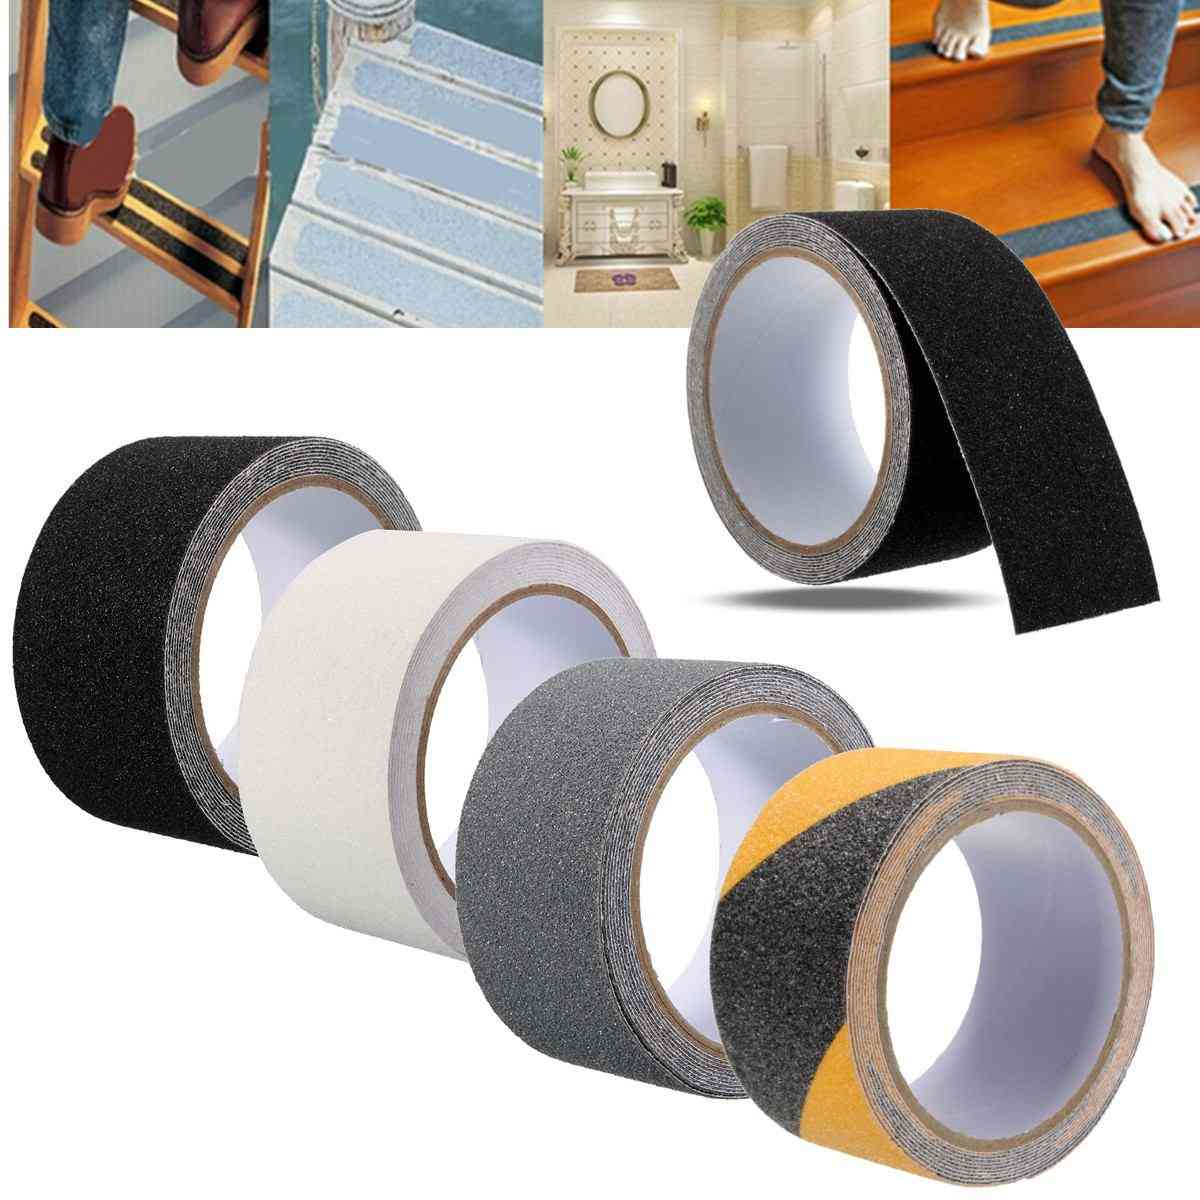 Non Slip Safety Grip Tape, Strong Adhesive Pvc Warning  Stickers